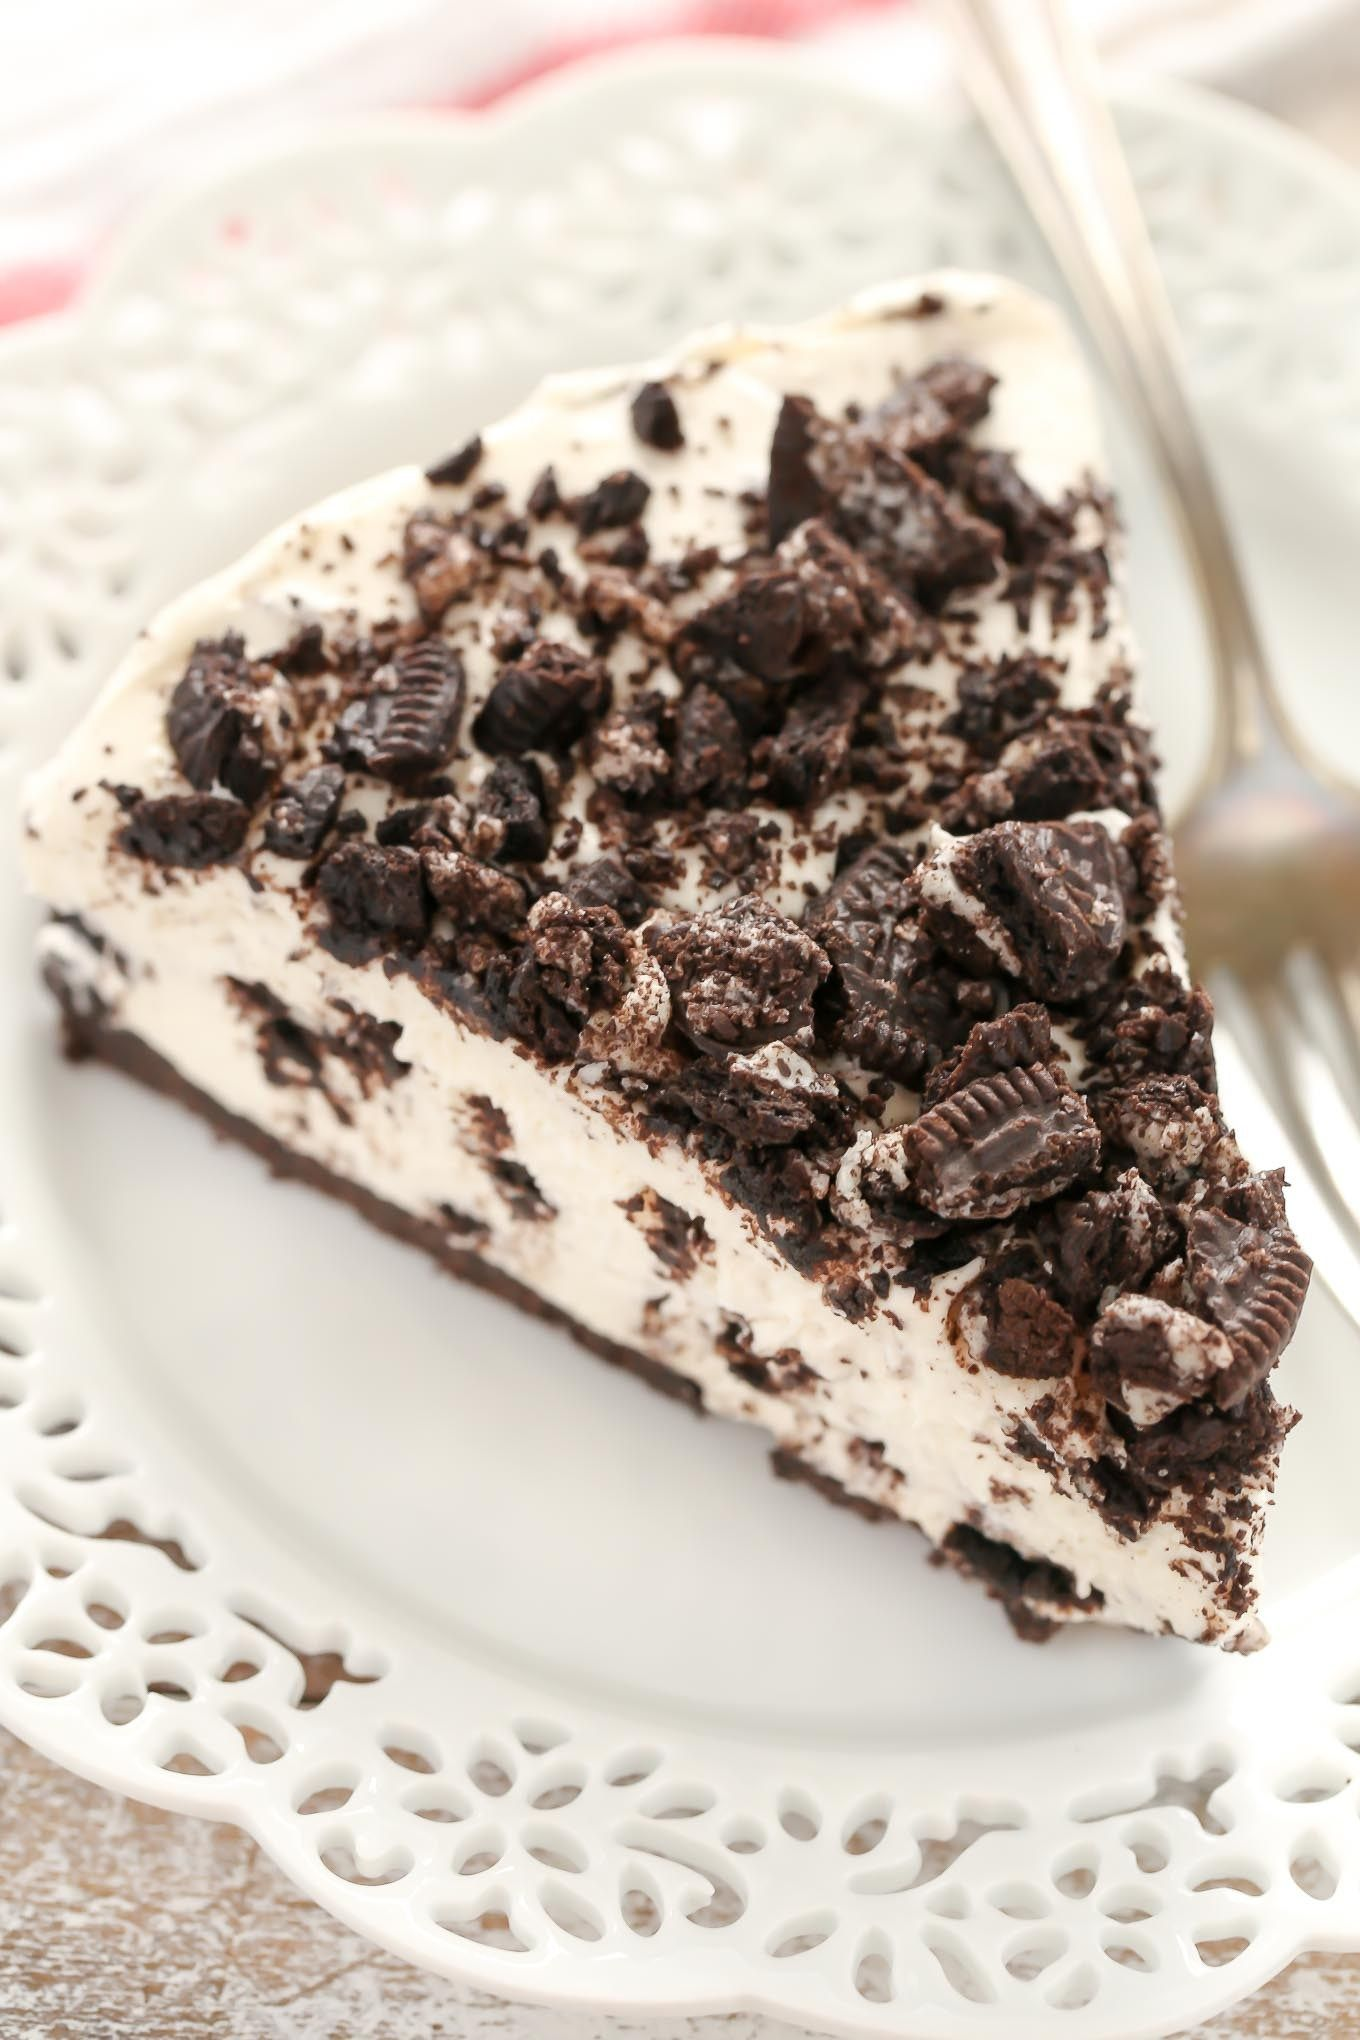 No Bake Oreo Kuchen An Easy No Bake Oreo Cheesecake With An Oreo Crust This Simple No